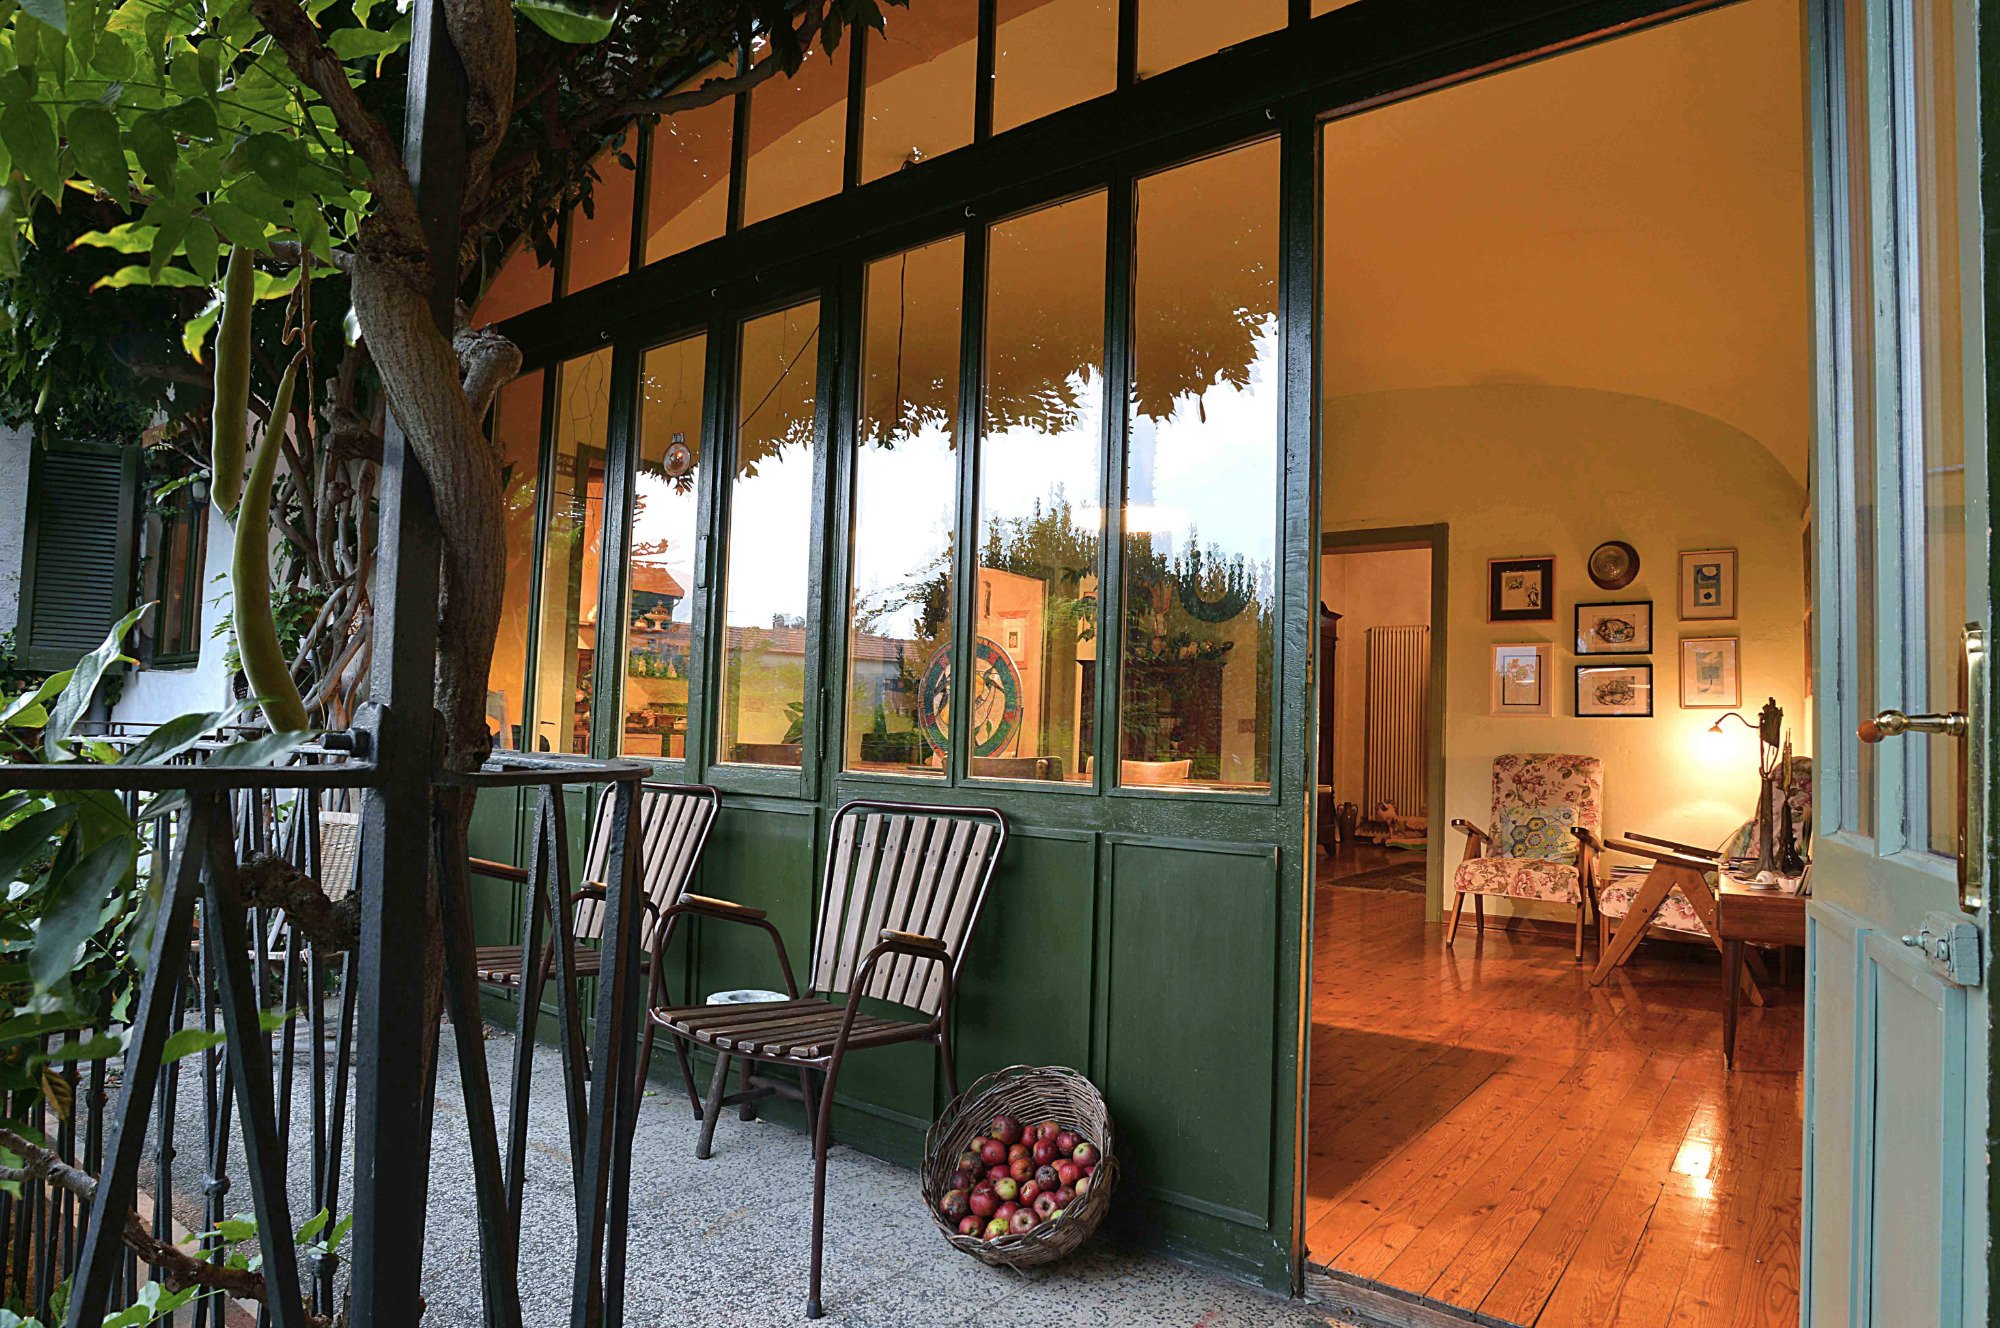 B&B Il Cortile